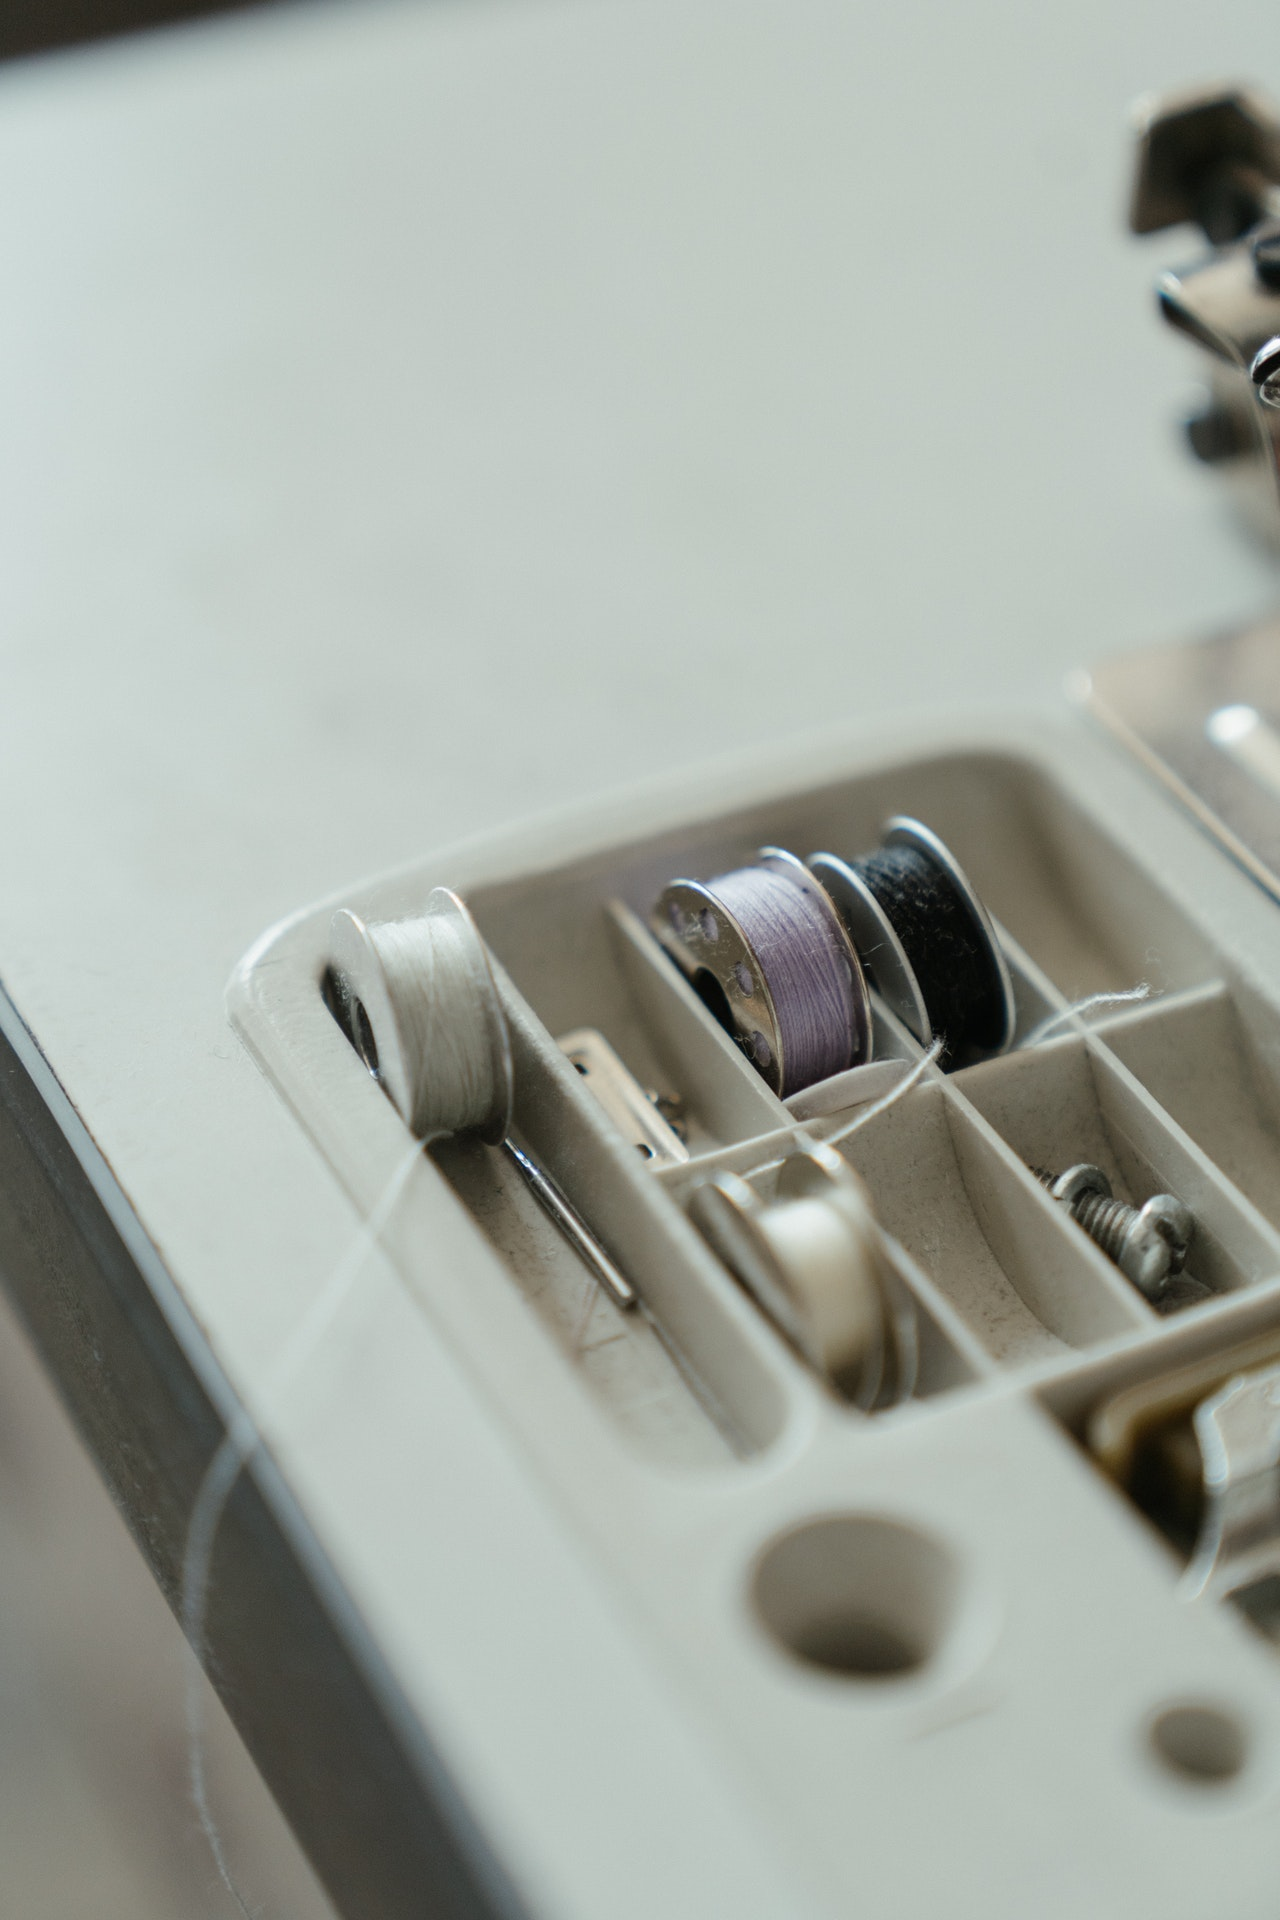 Do sewing machines come with bobbins?